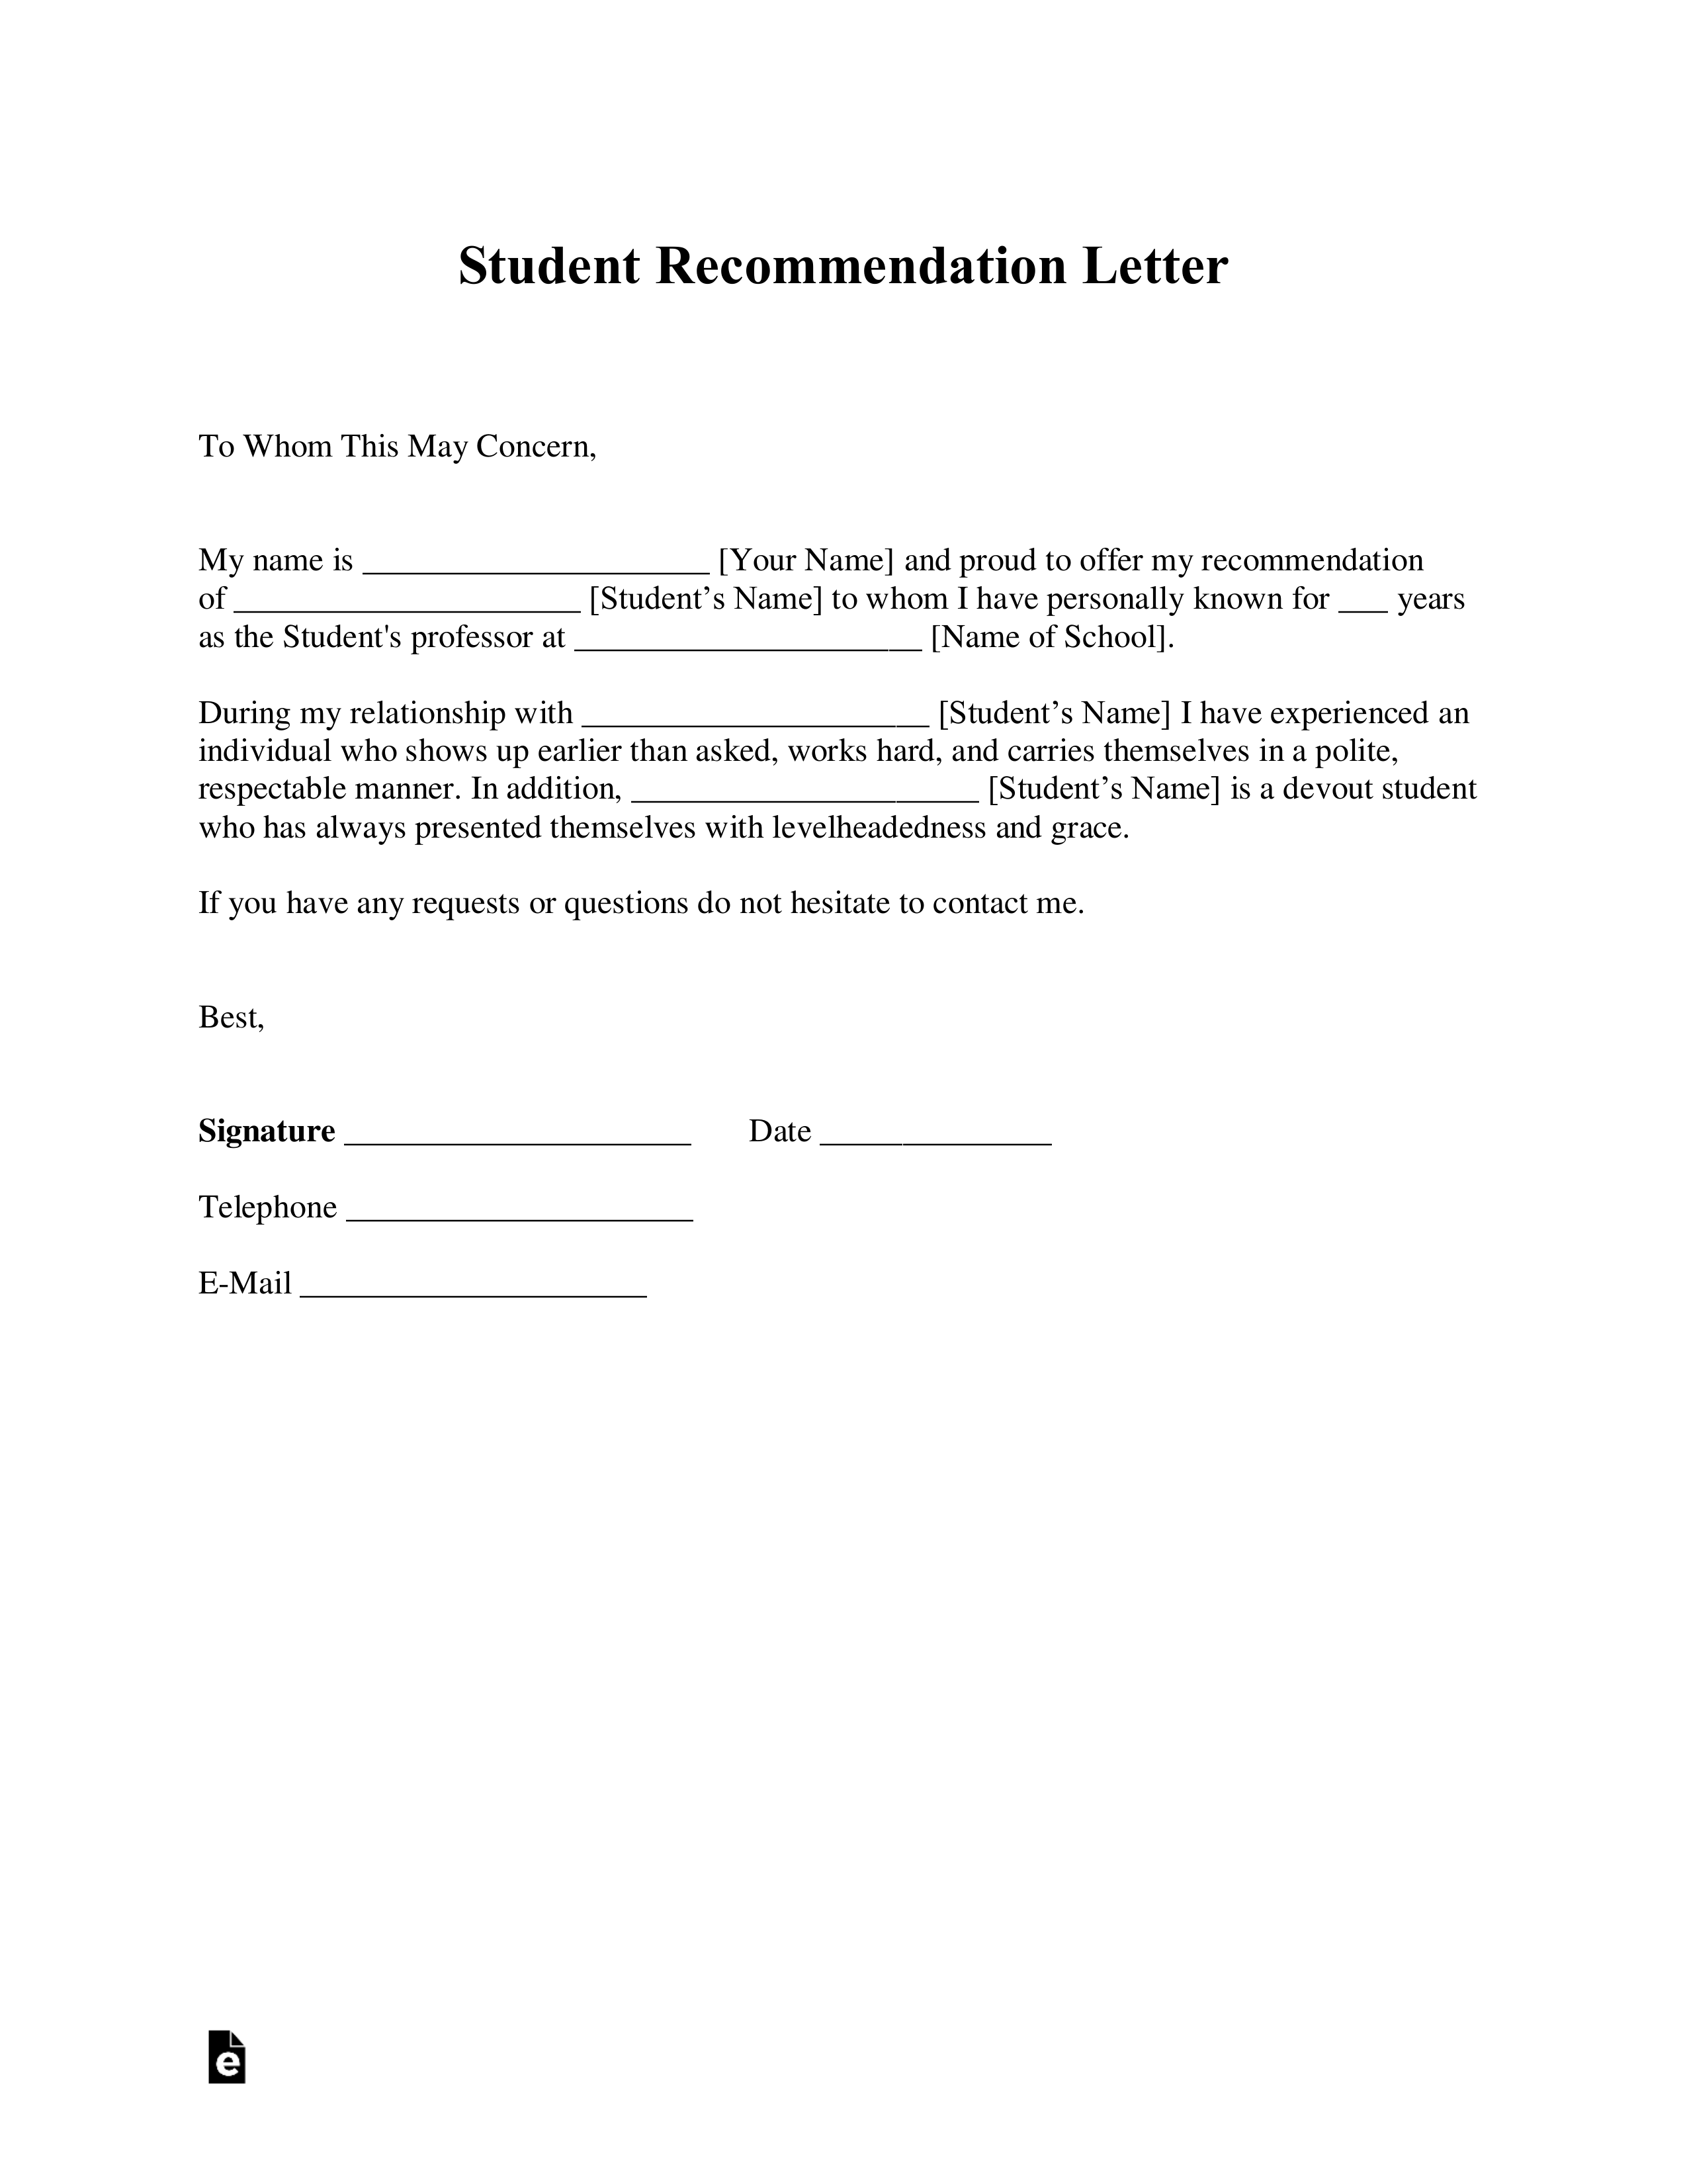 Free Student Recommendation Letter Template - with Samples